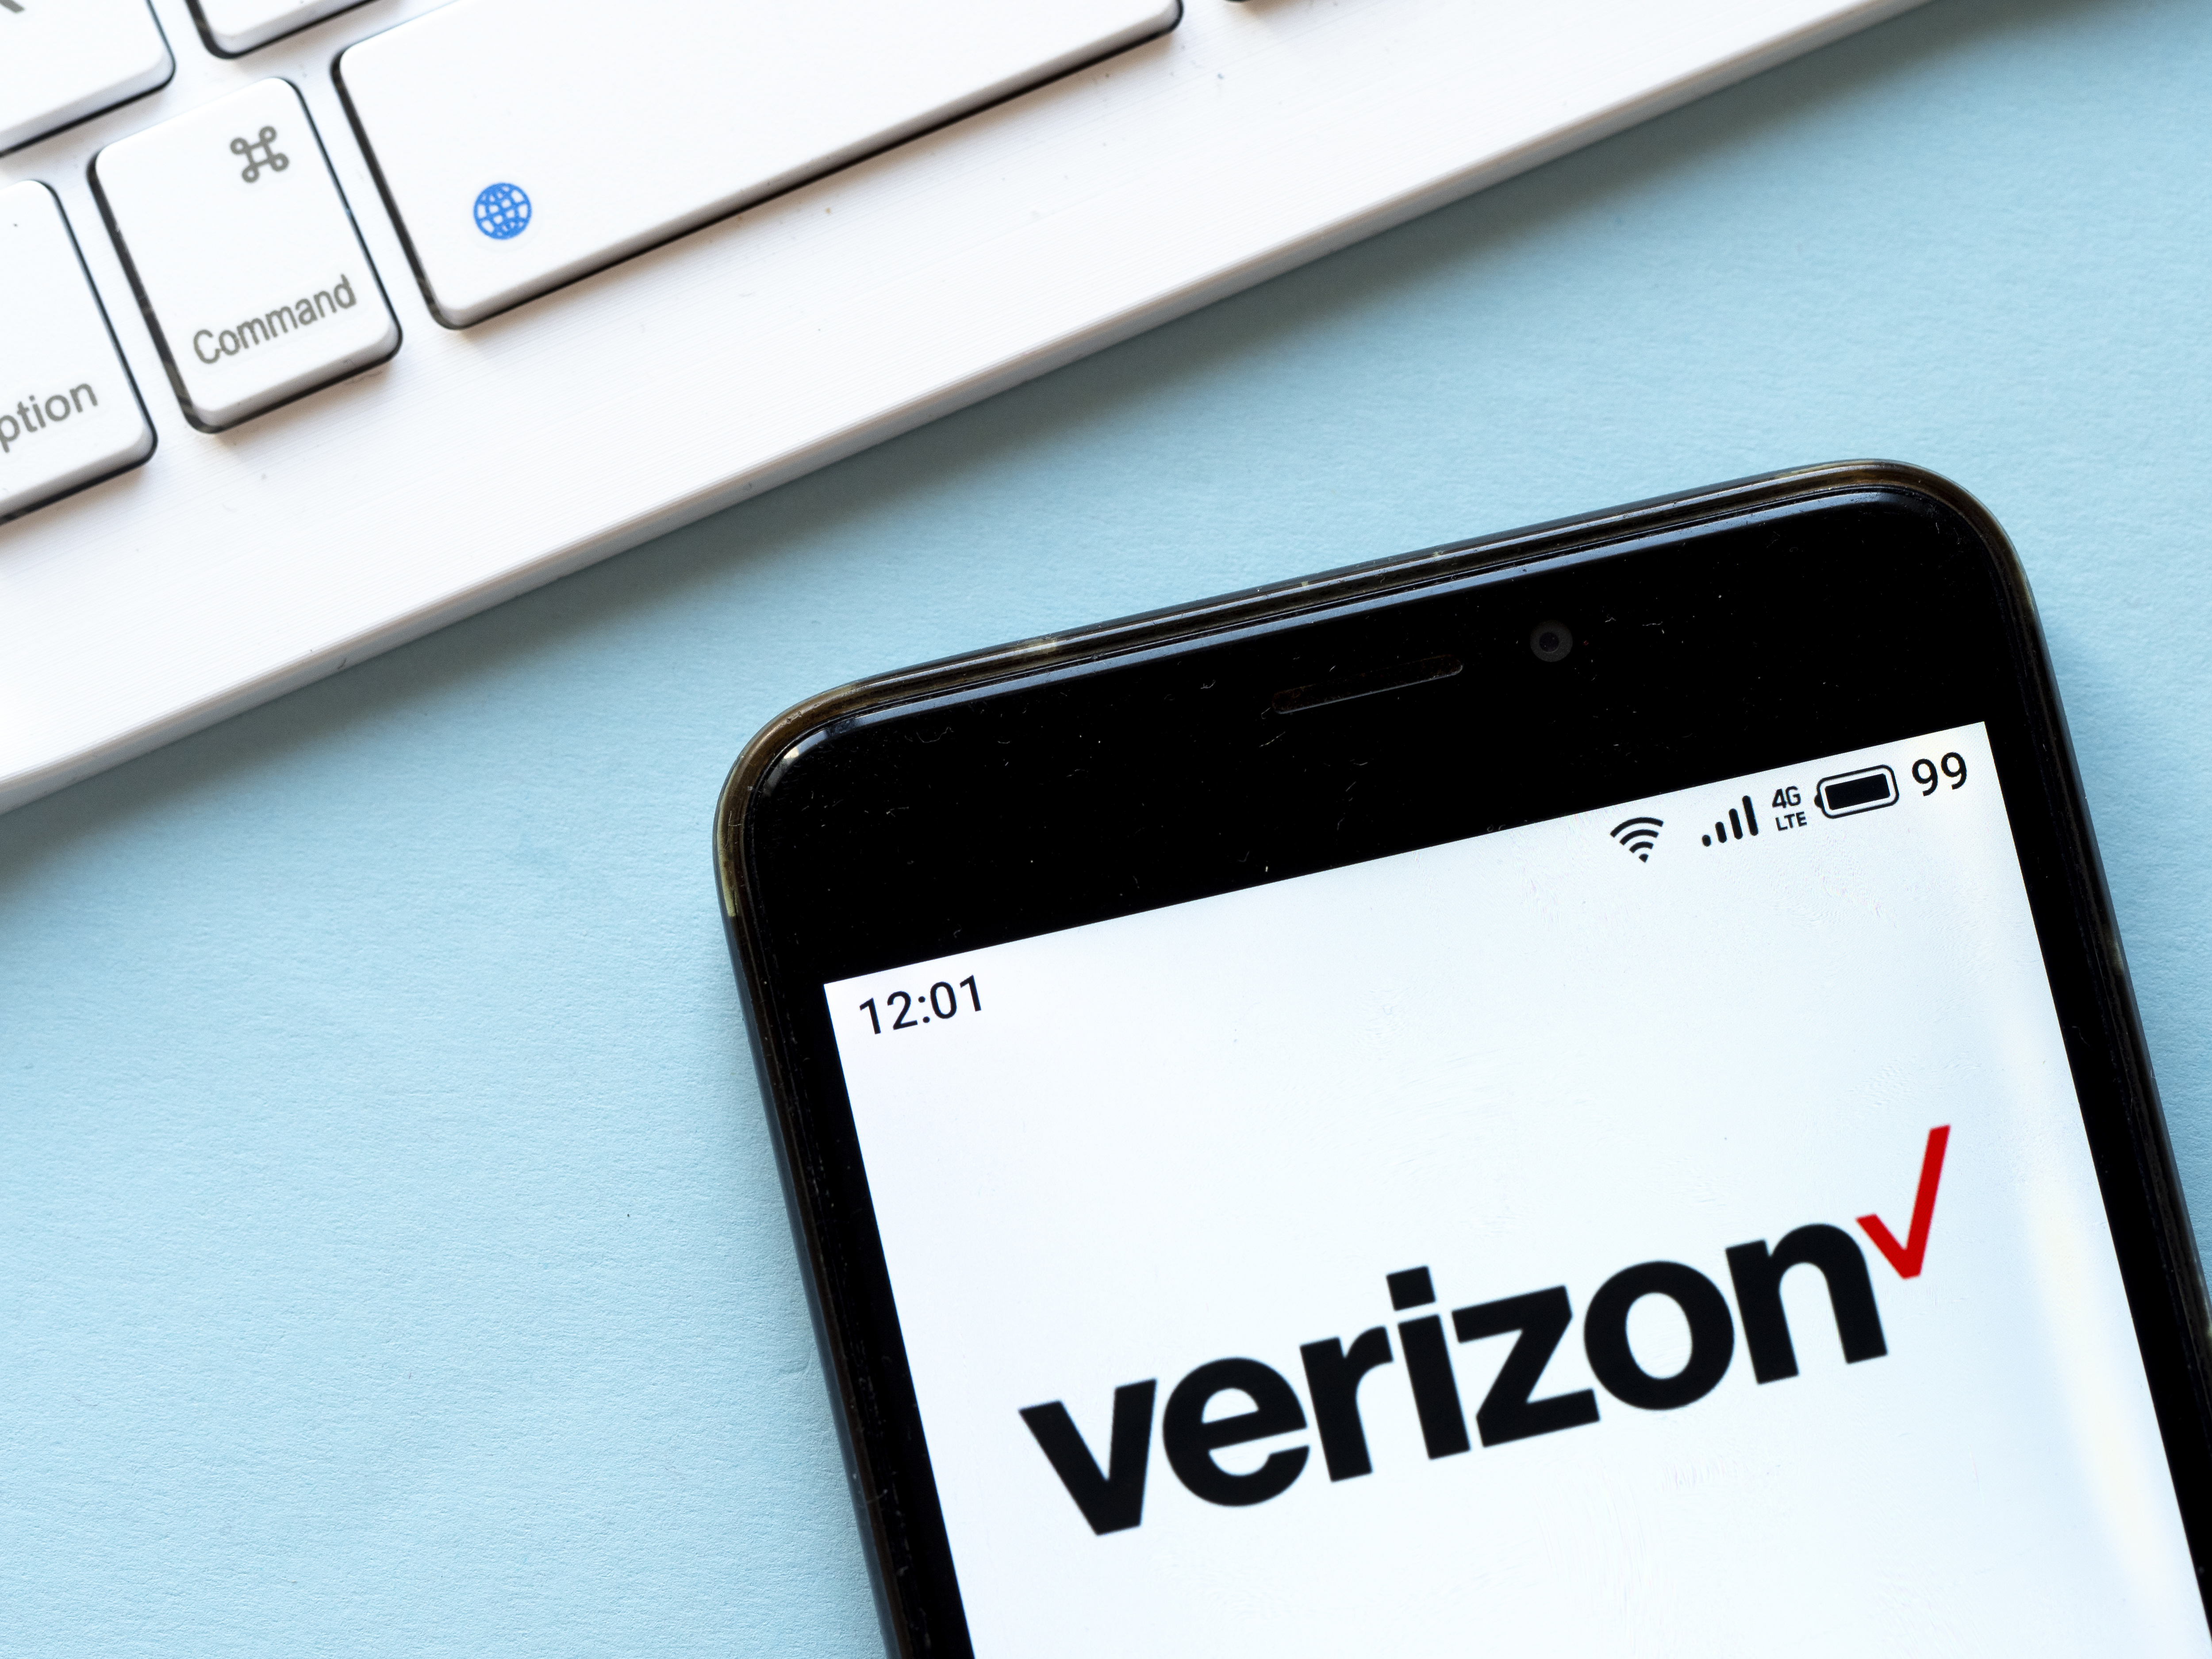 Verizon's LTE Home internet service expands to 189 markets nationwide